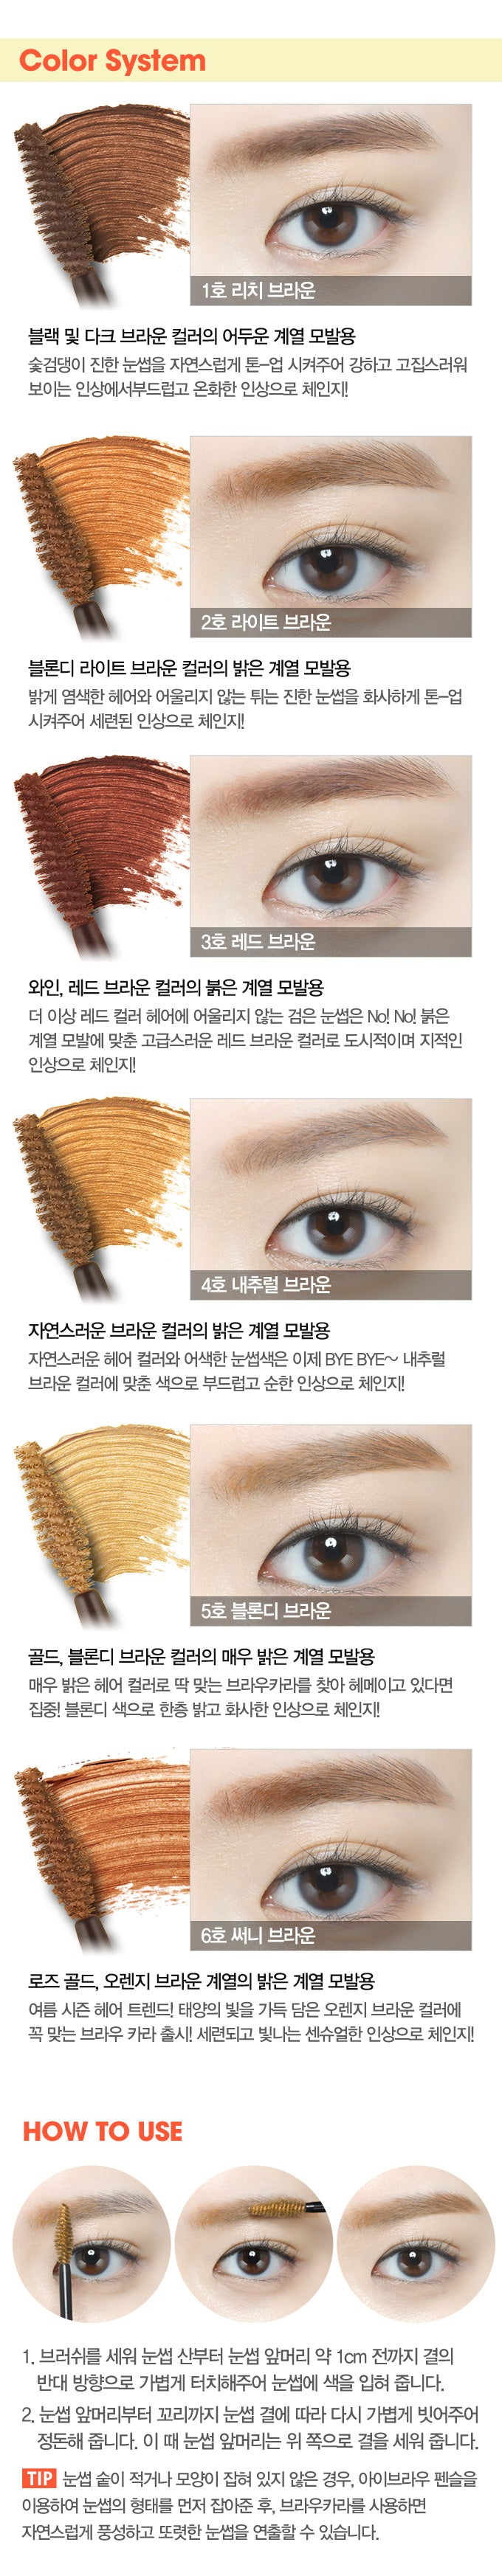 Etude House Color My Brows Mascara 03 Red Brown Oo35mm Brow